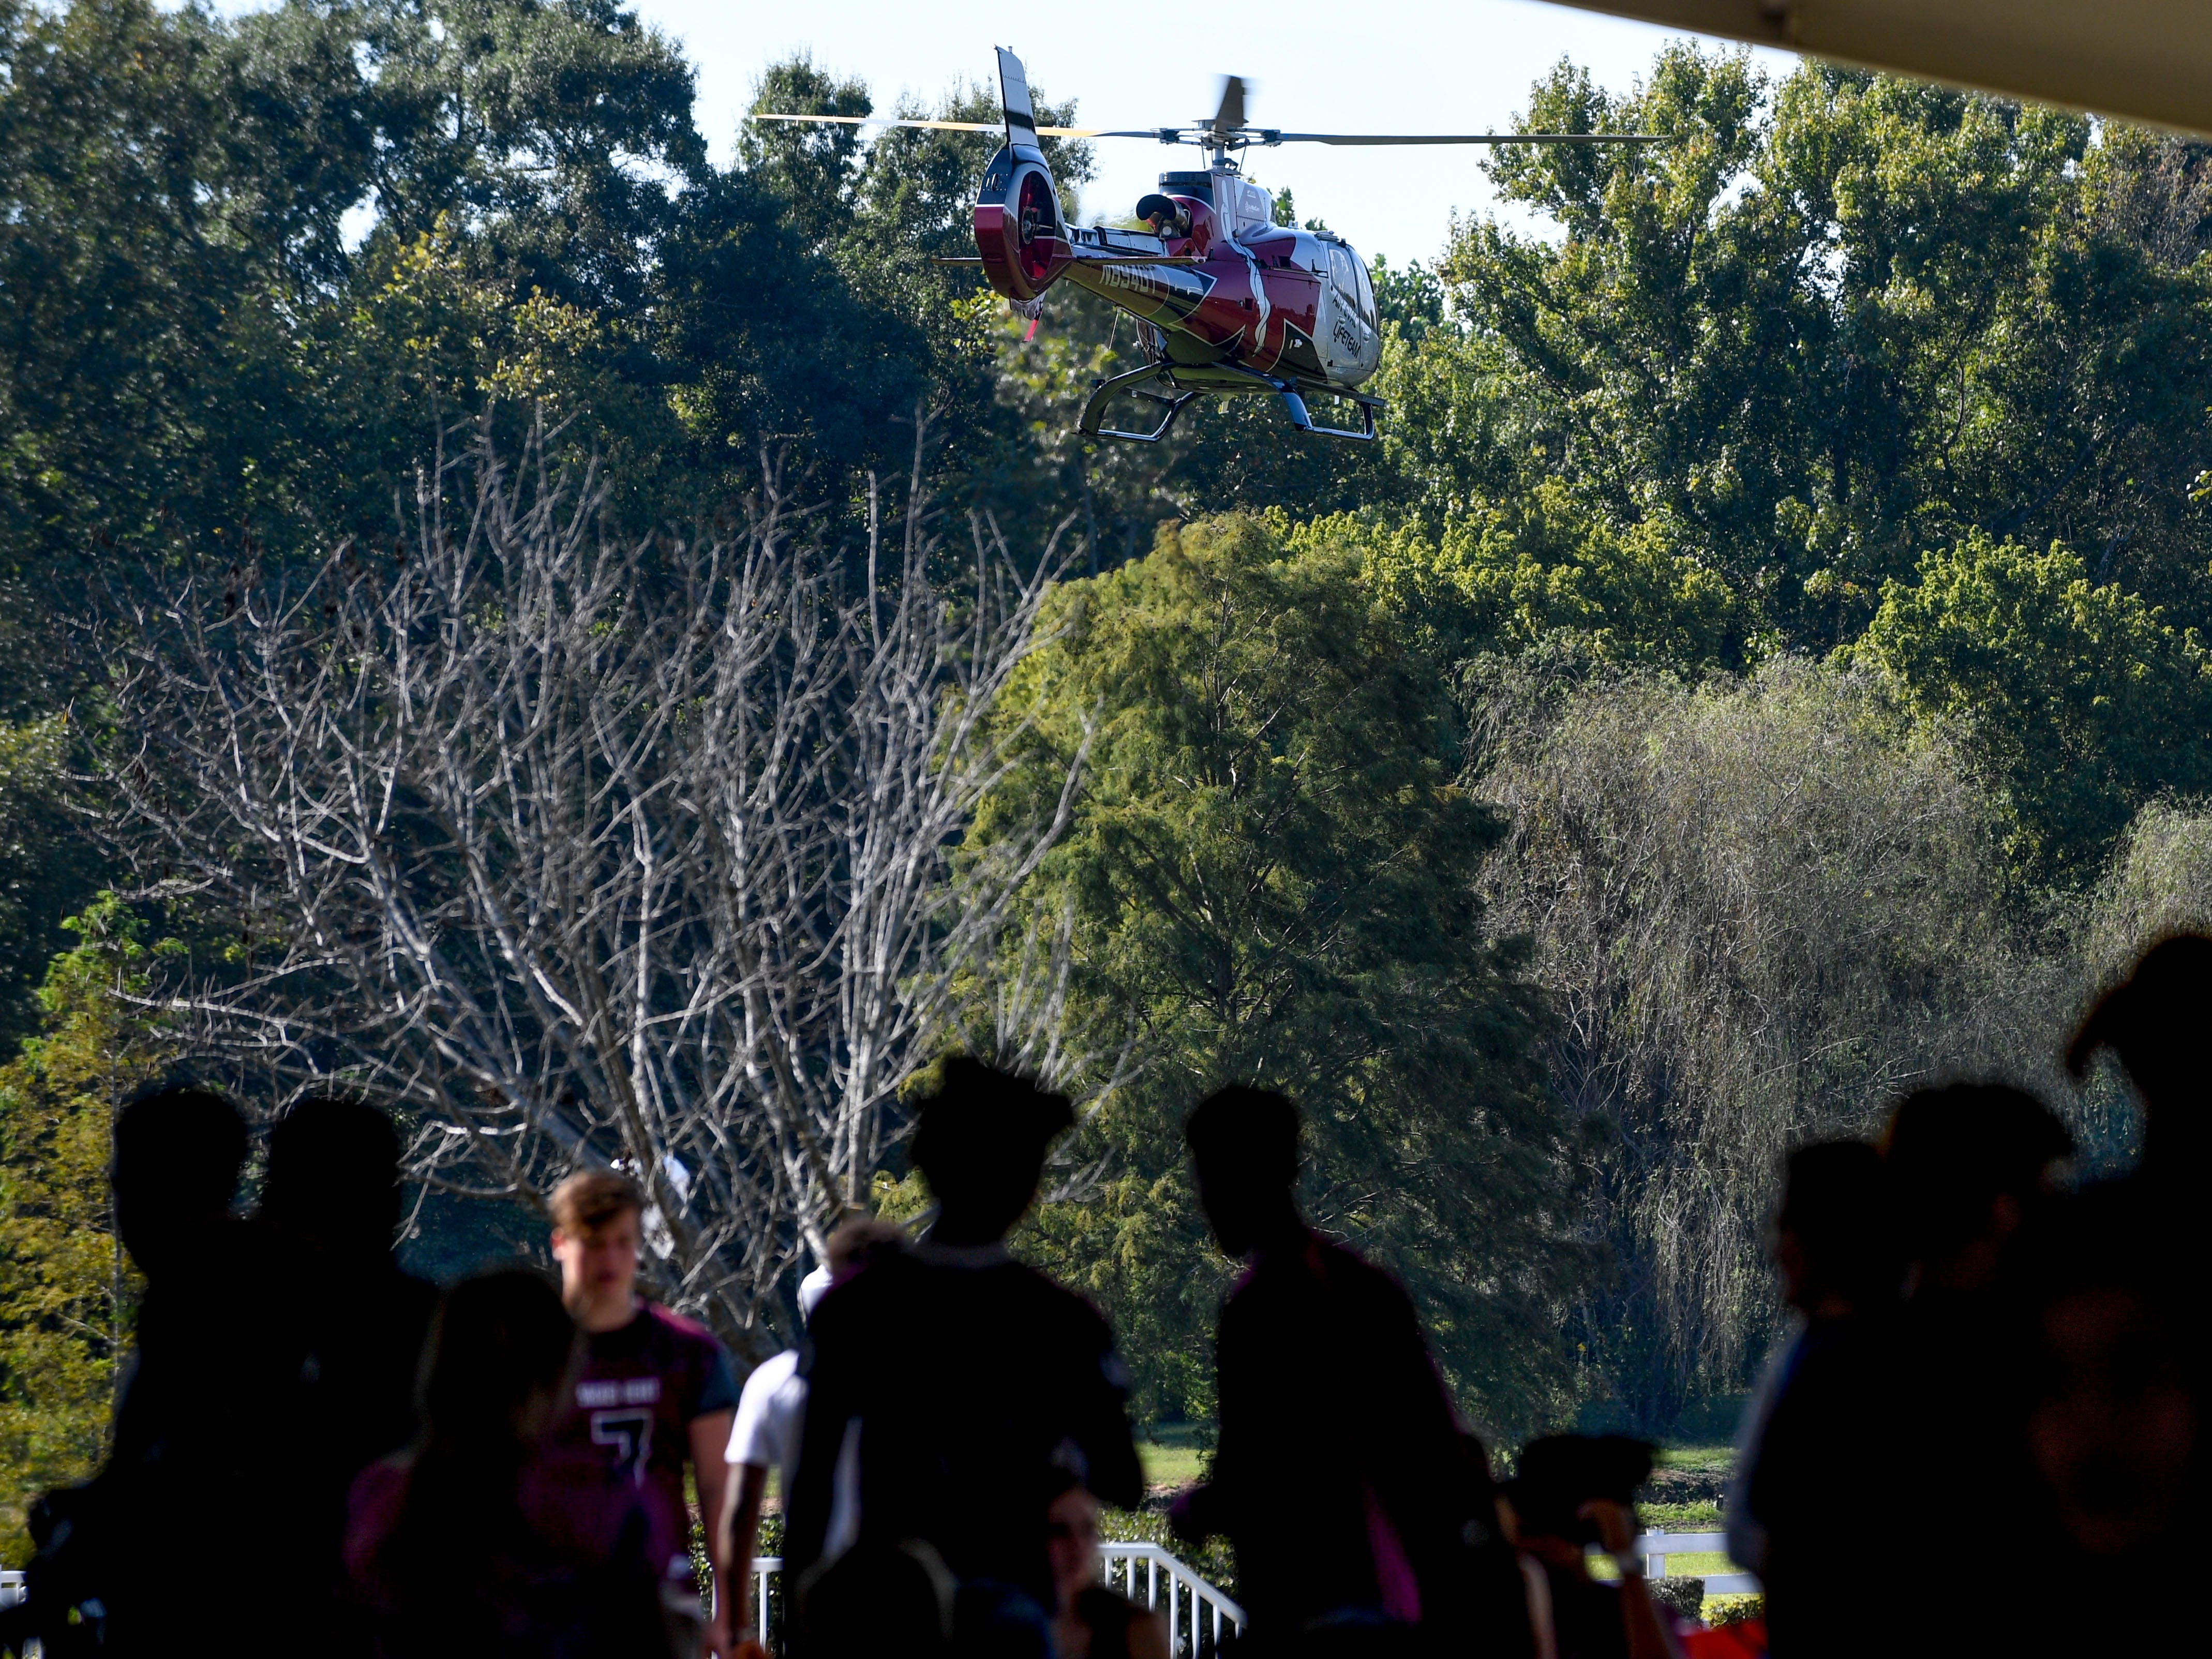 A medical evacuation helicopter departs from the Day of Champions celebration held at Jackson Fairgrounds Park in Jackson, Tenn., on Wednesday, Sept. 19, 2018.